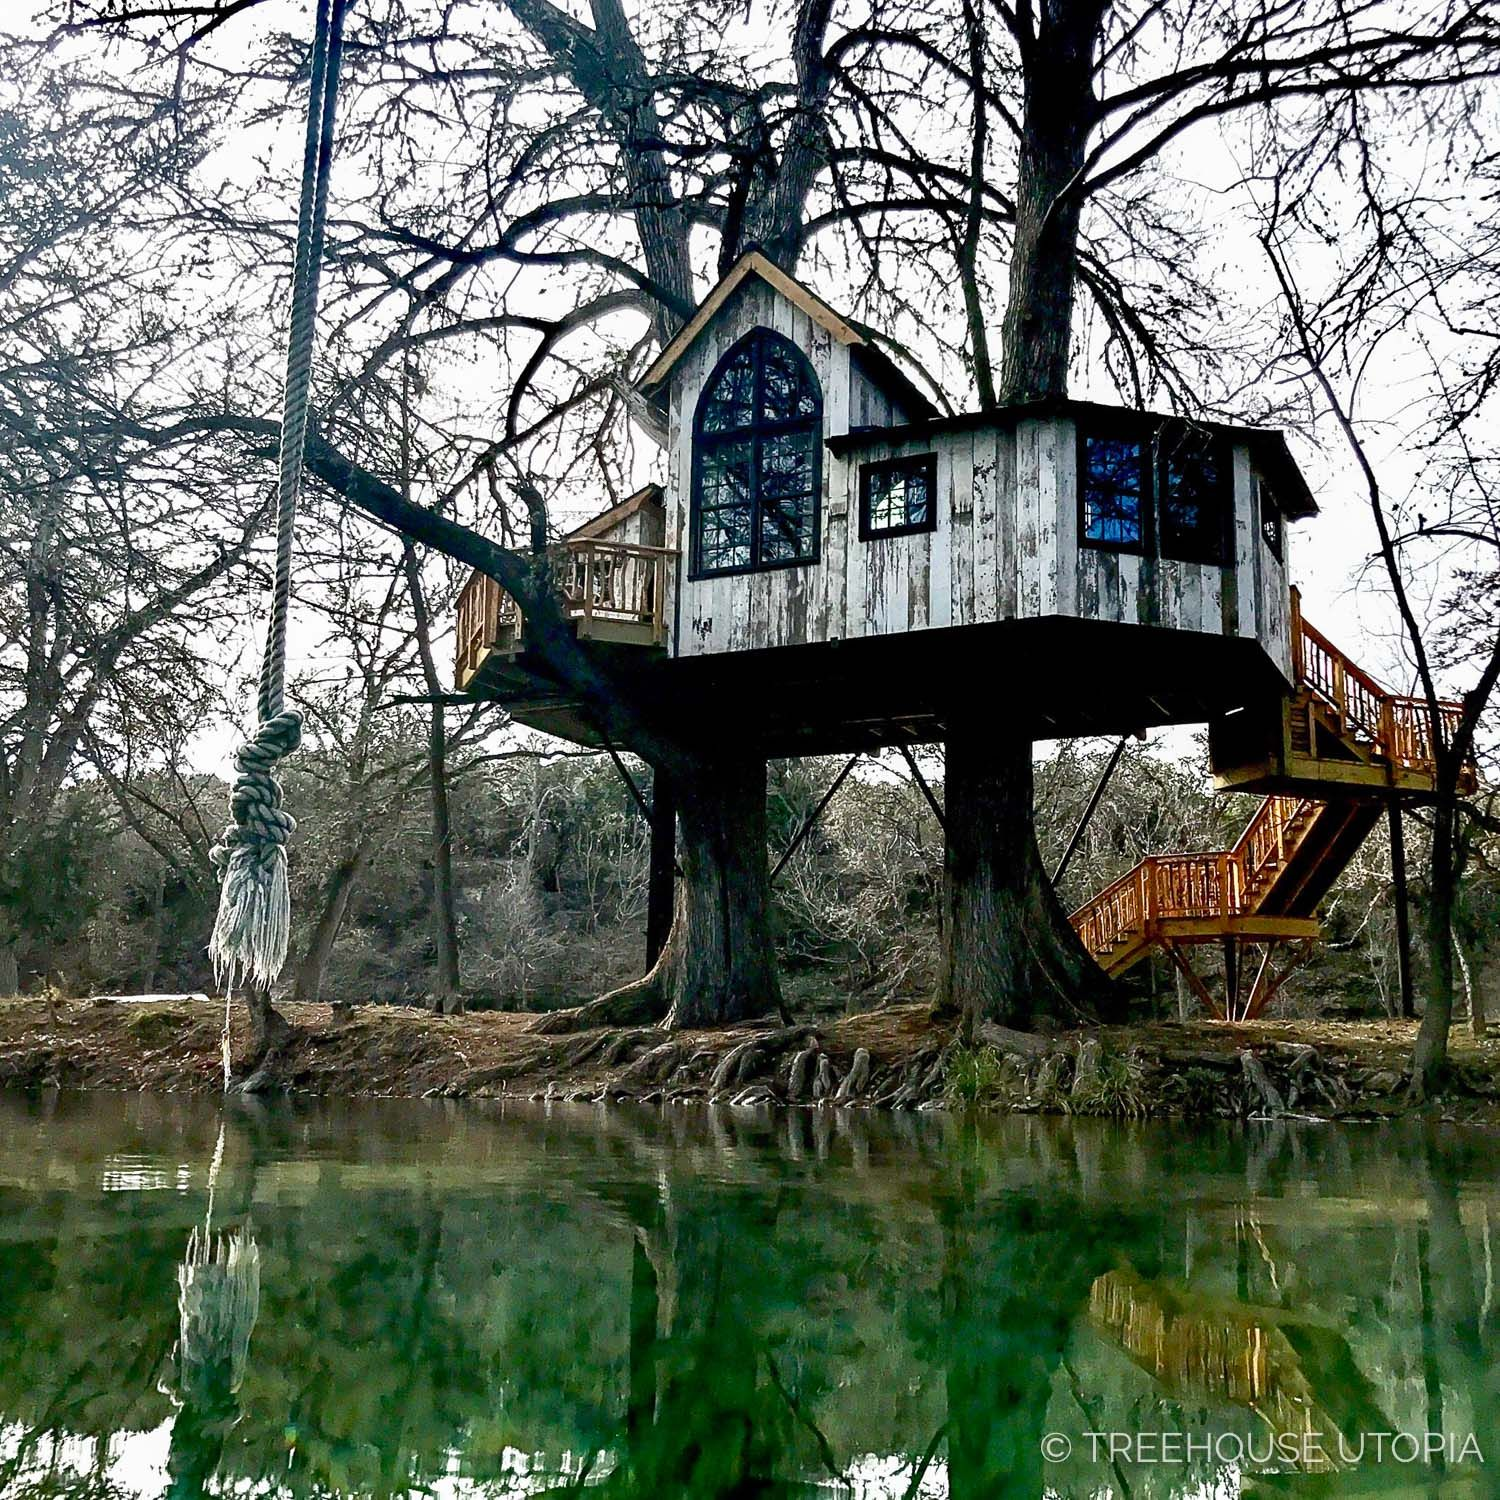 River By Chapelle At Treehouse Utopia A Texas Hill Country